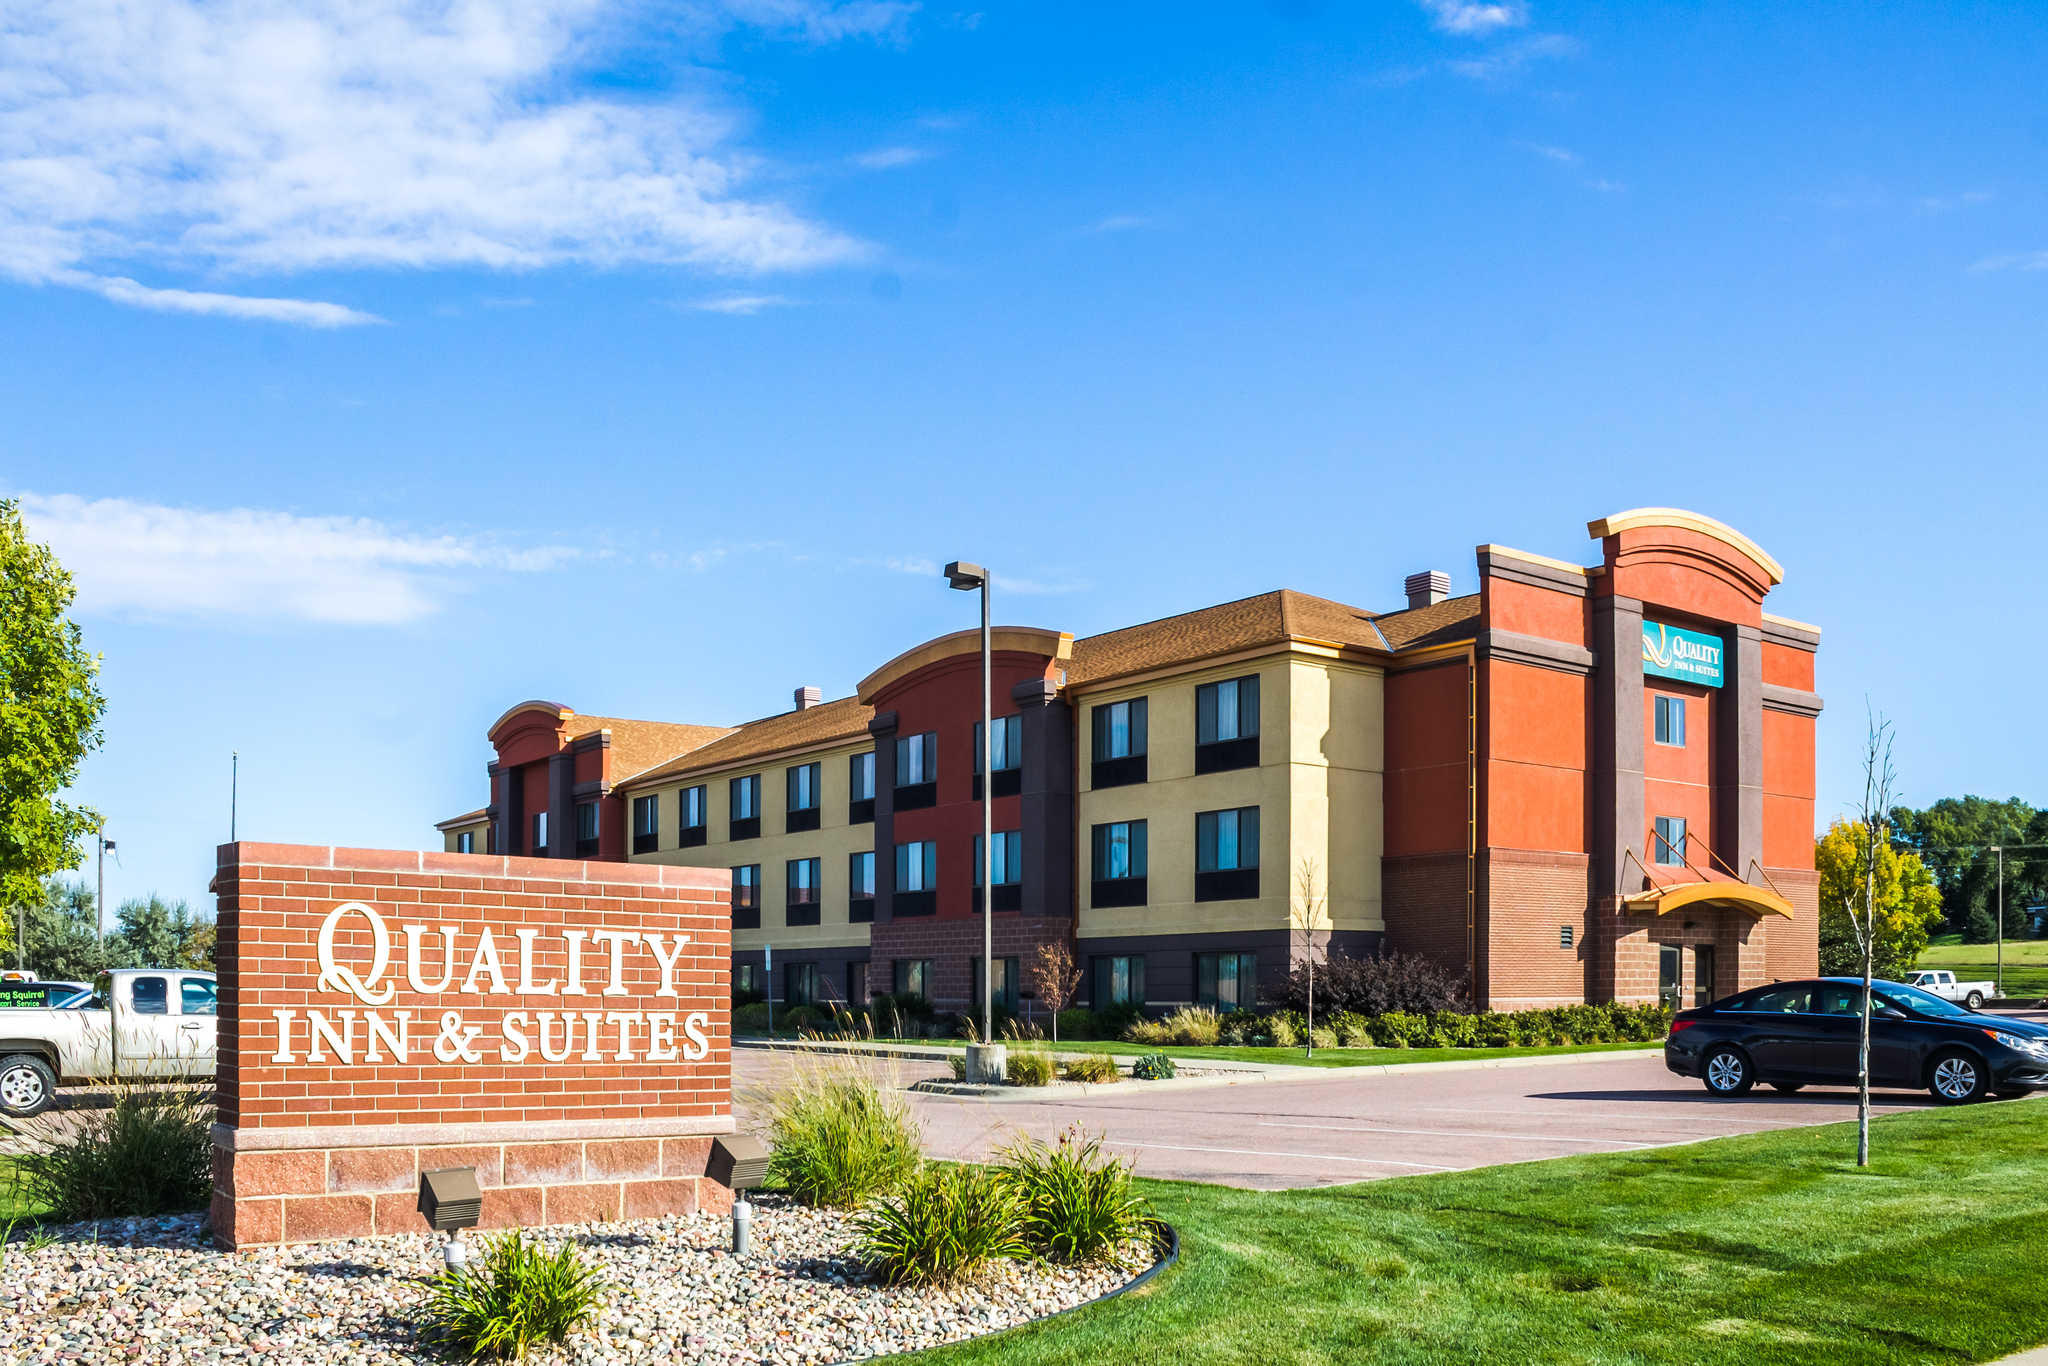 Hotels In Sioux Falls Sd Near I